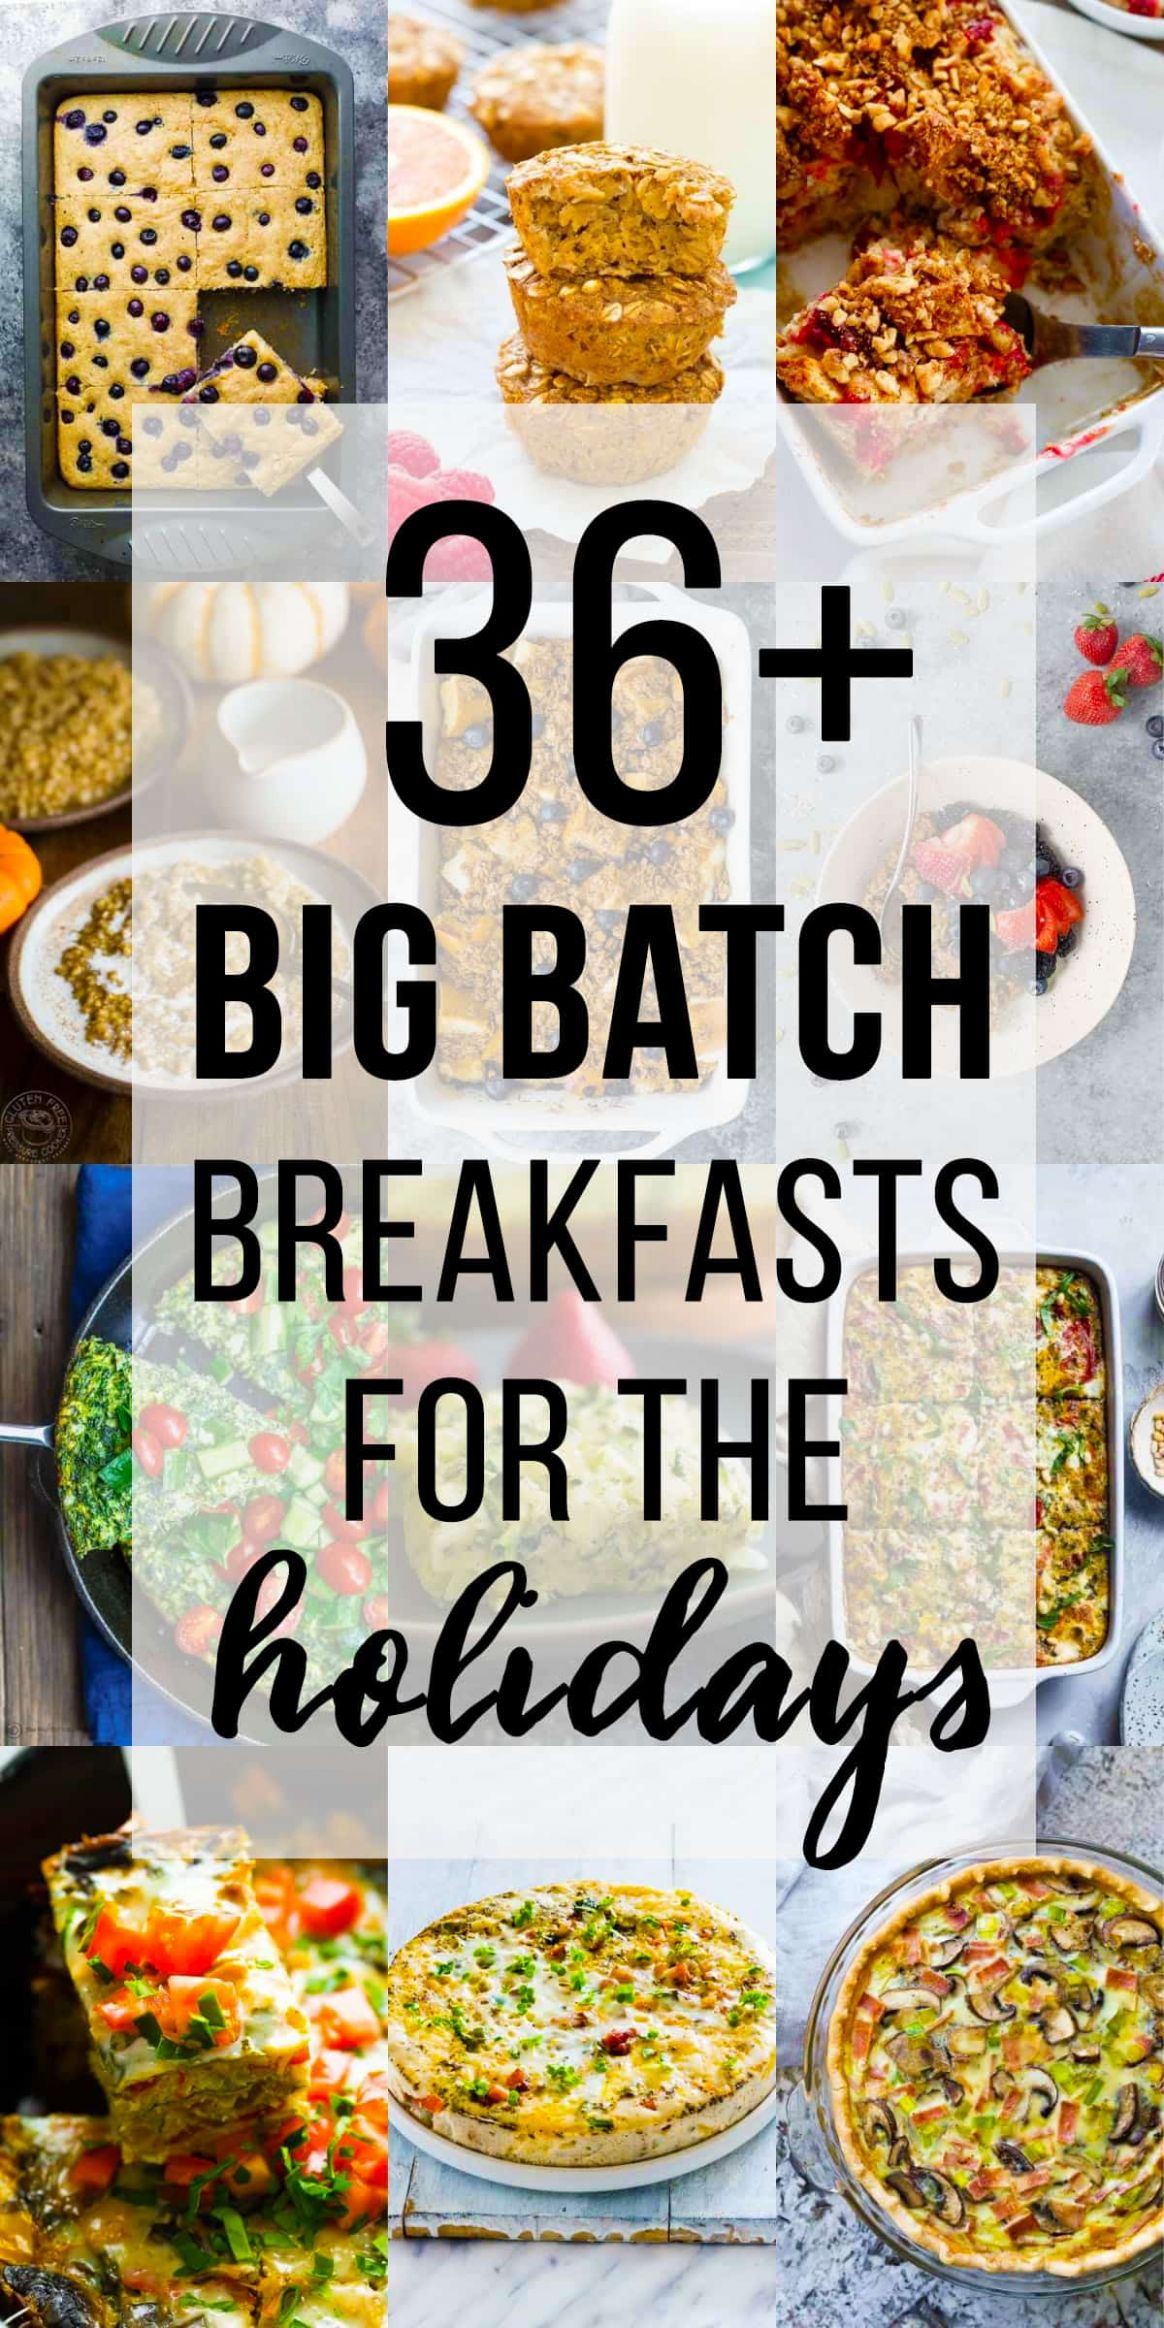 8+ Big Batch Christmas Breakfast Ideas | Sweet Peas and Saffron - Breakfast Recipes To Feed A Crowd